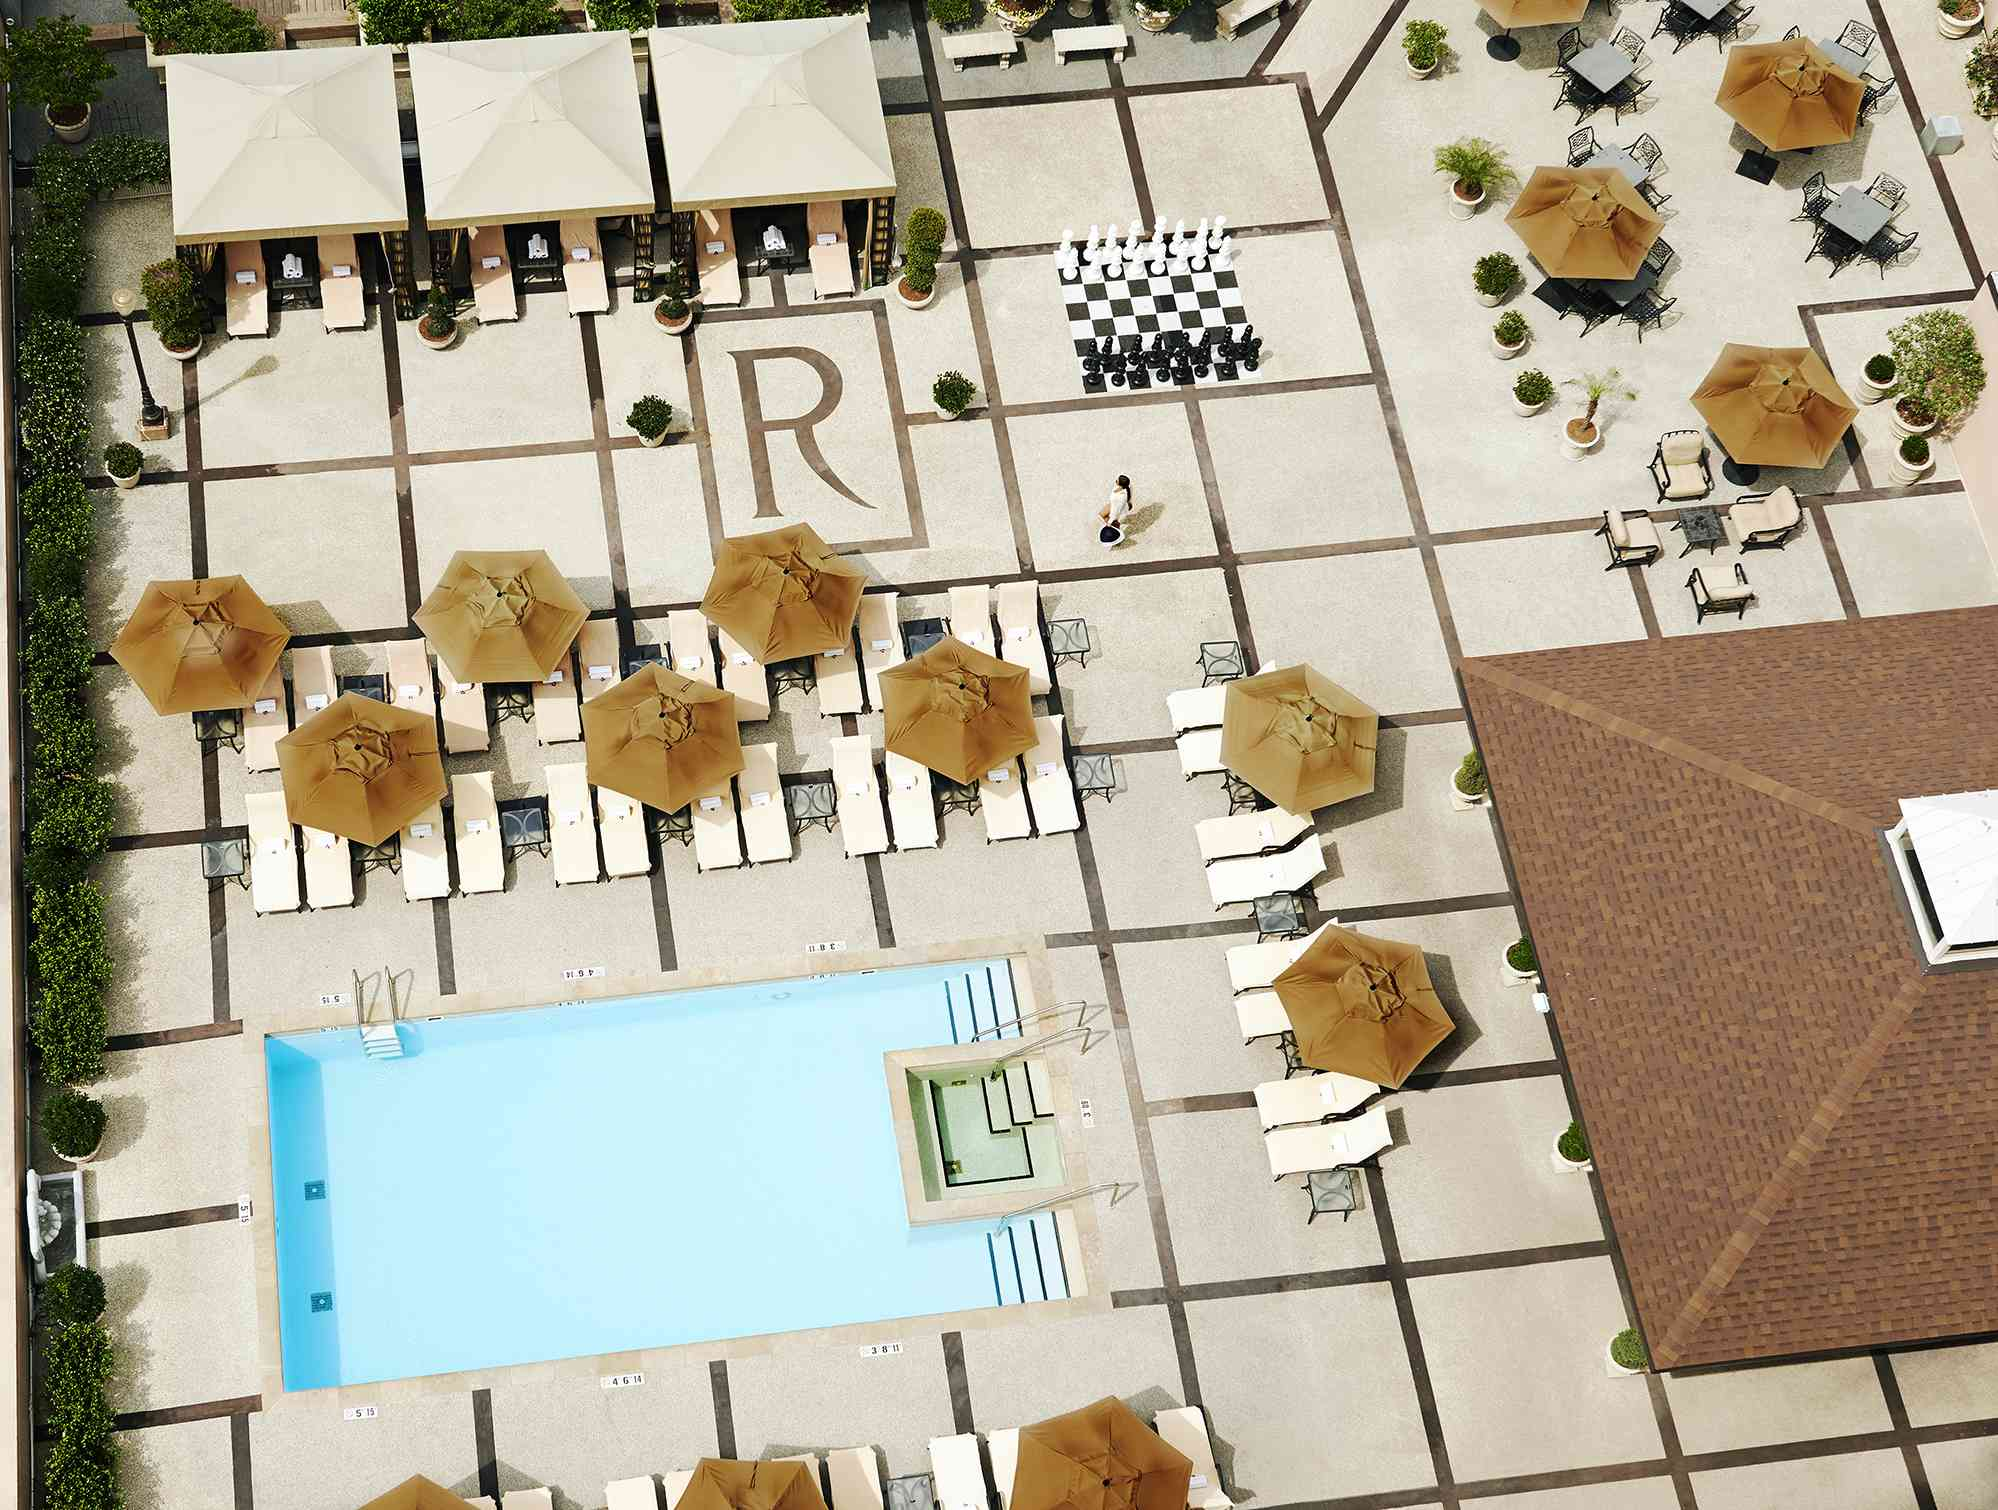 Roosevelt Hotel, New Orleans pool scene (aerial view)